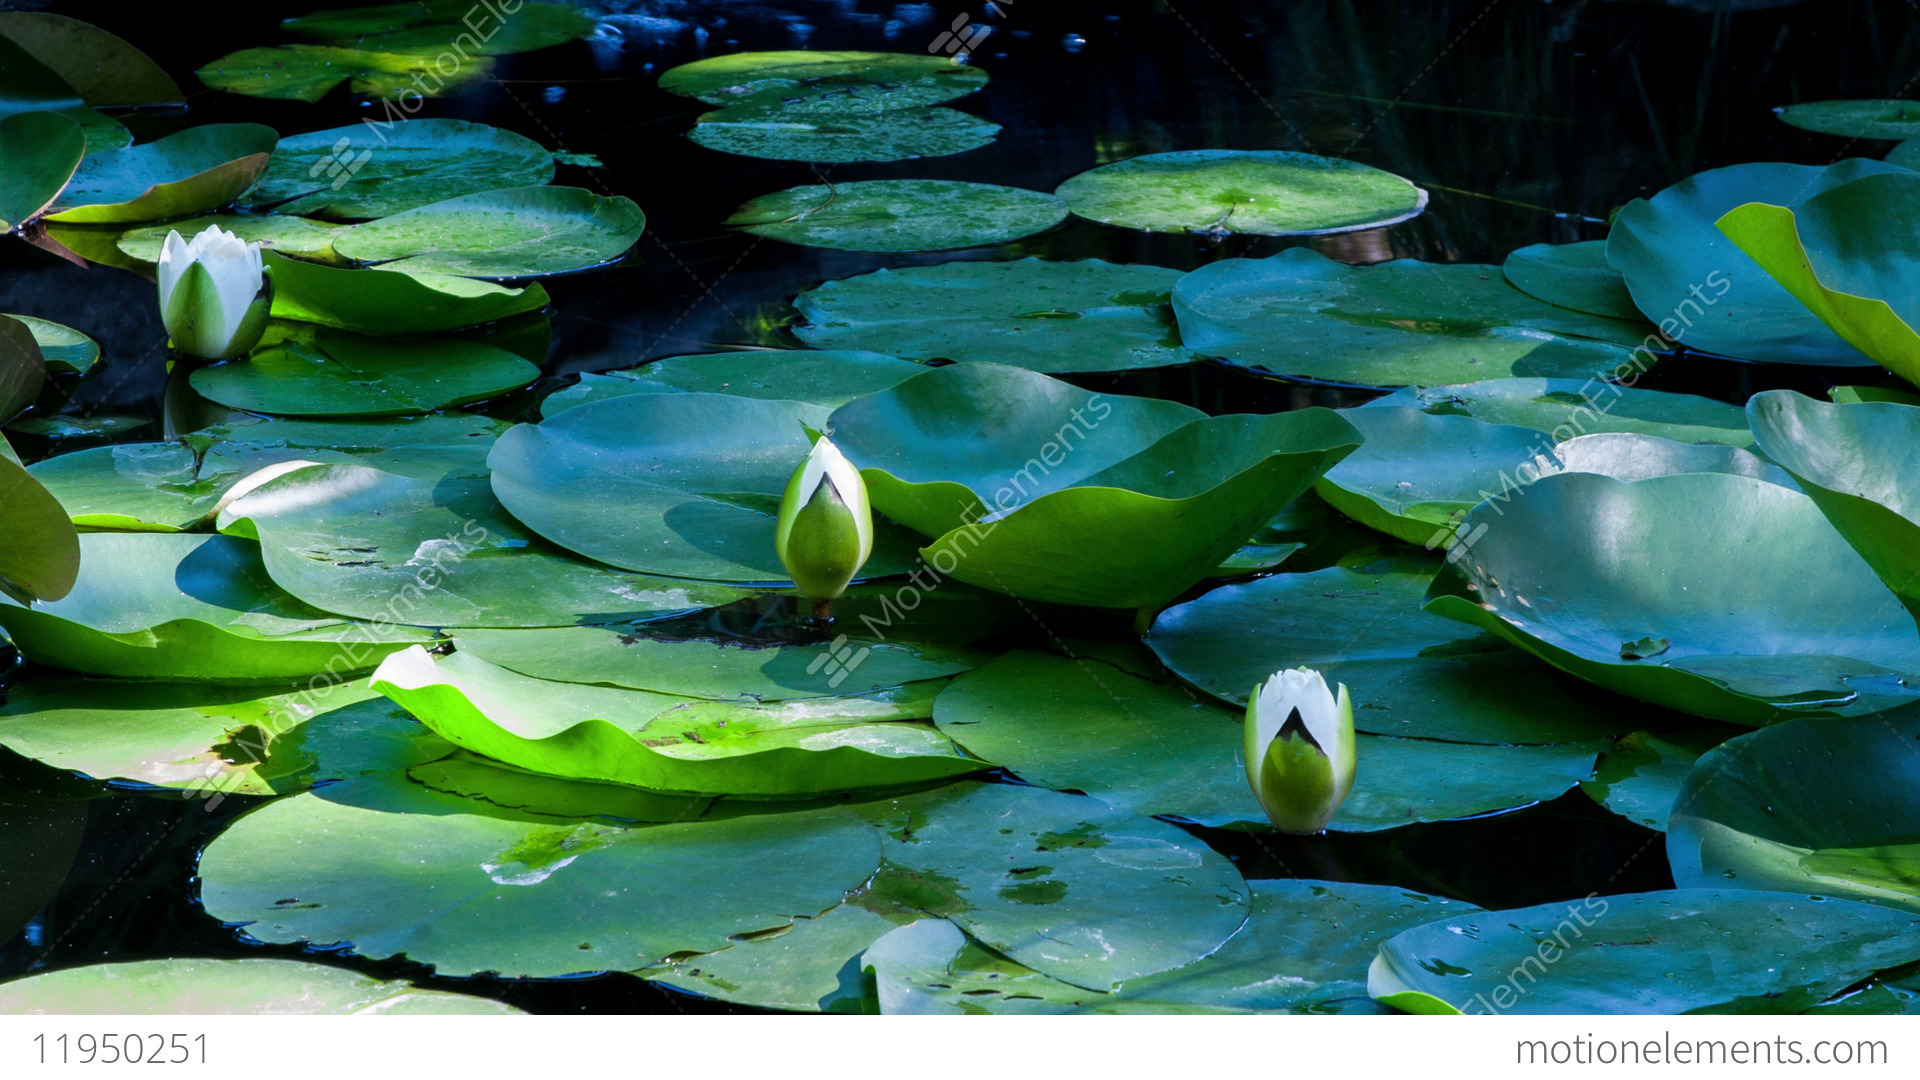 Time Lapse Lotus Flowers Opening And Closing In A Pond Cycle Of